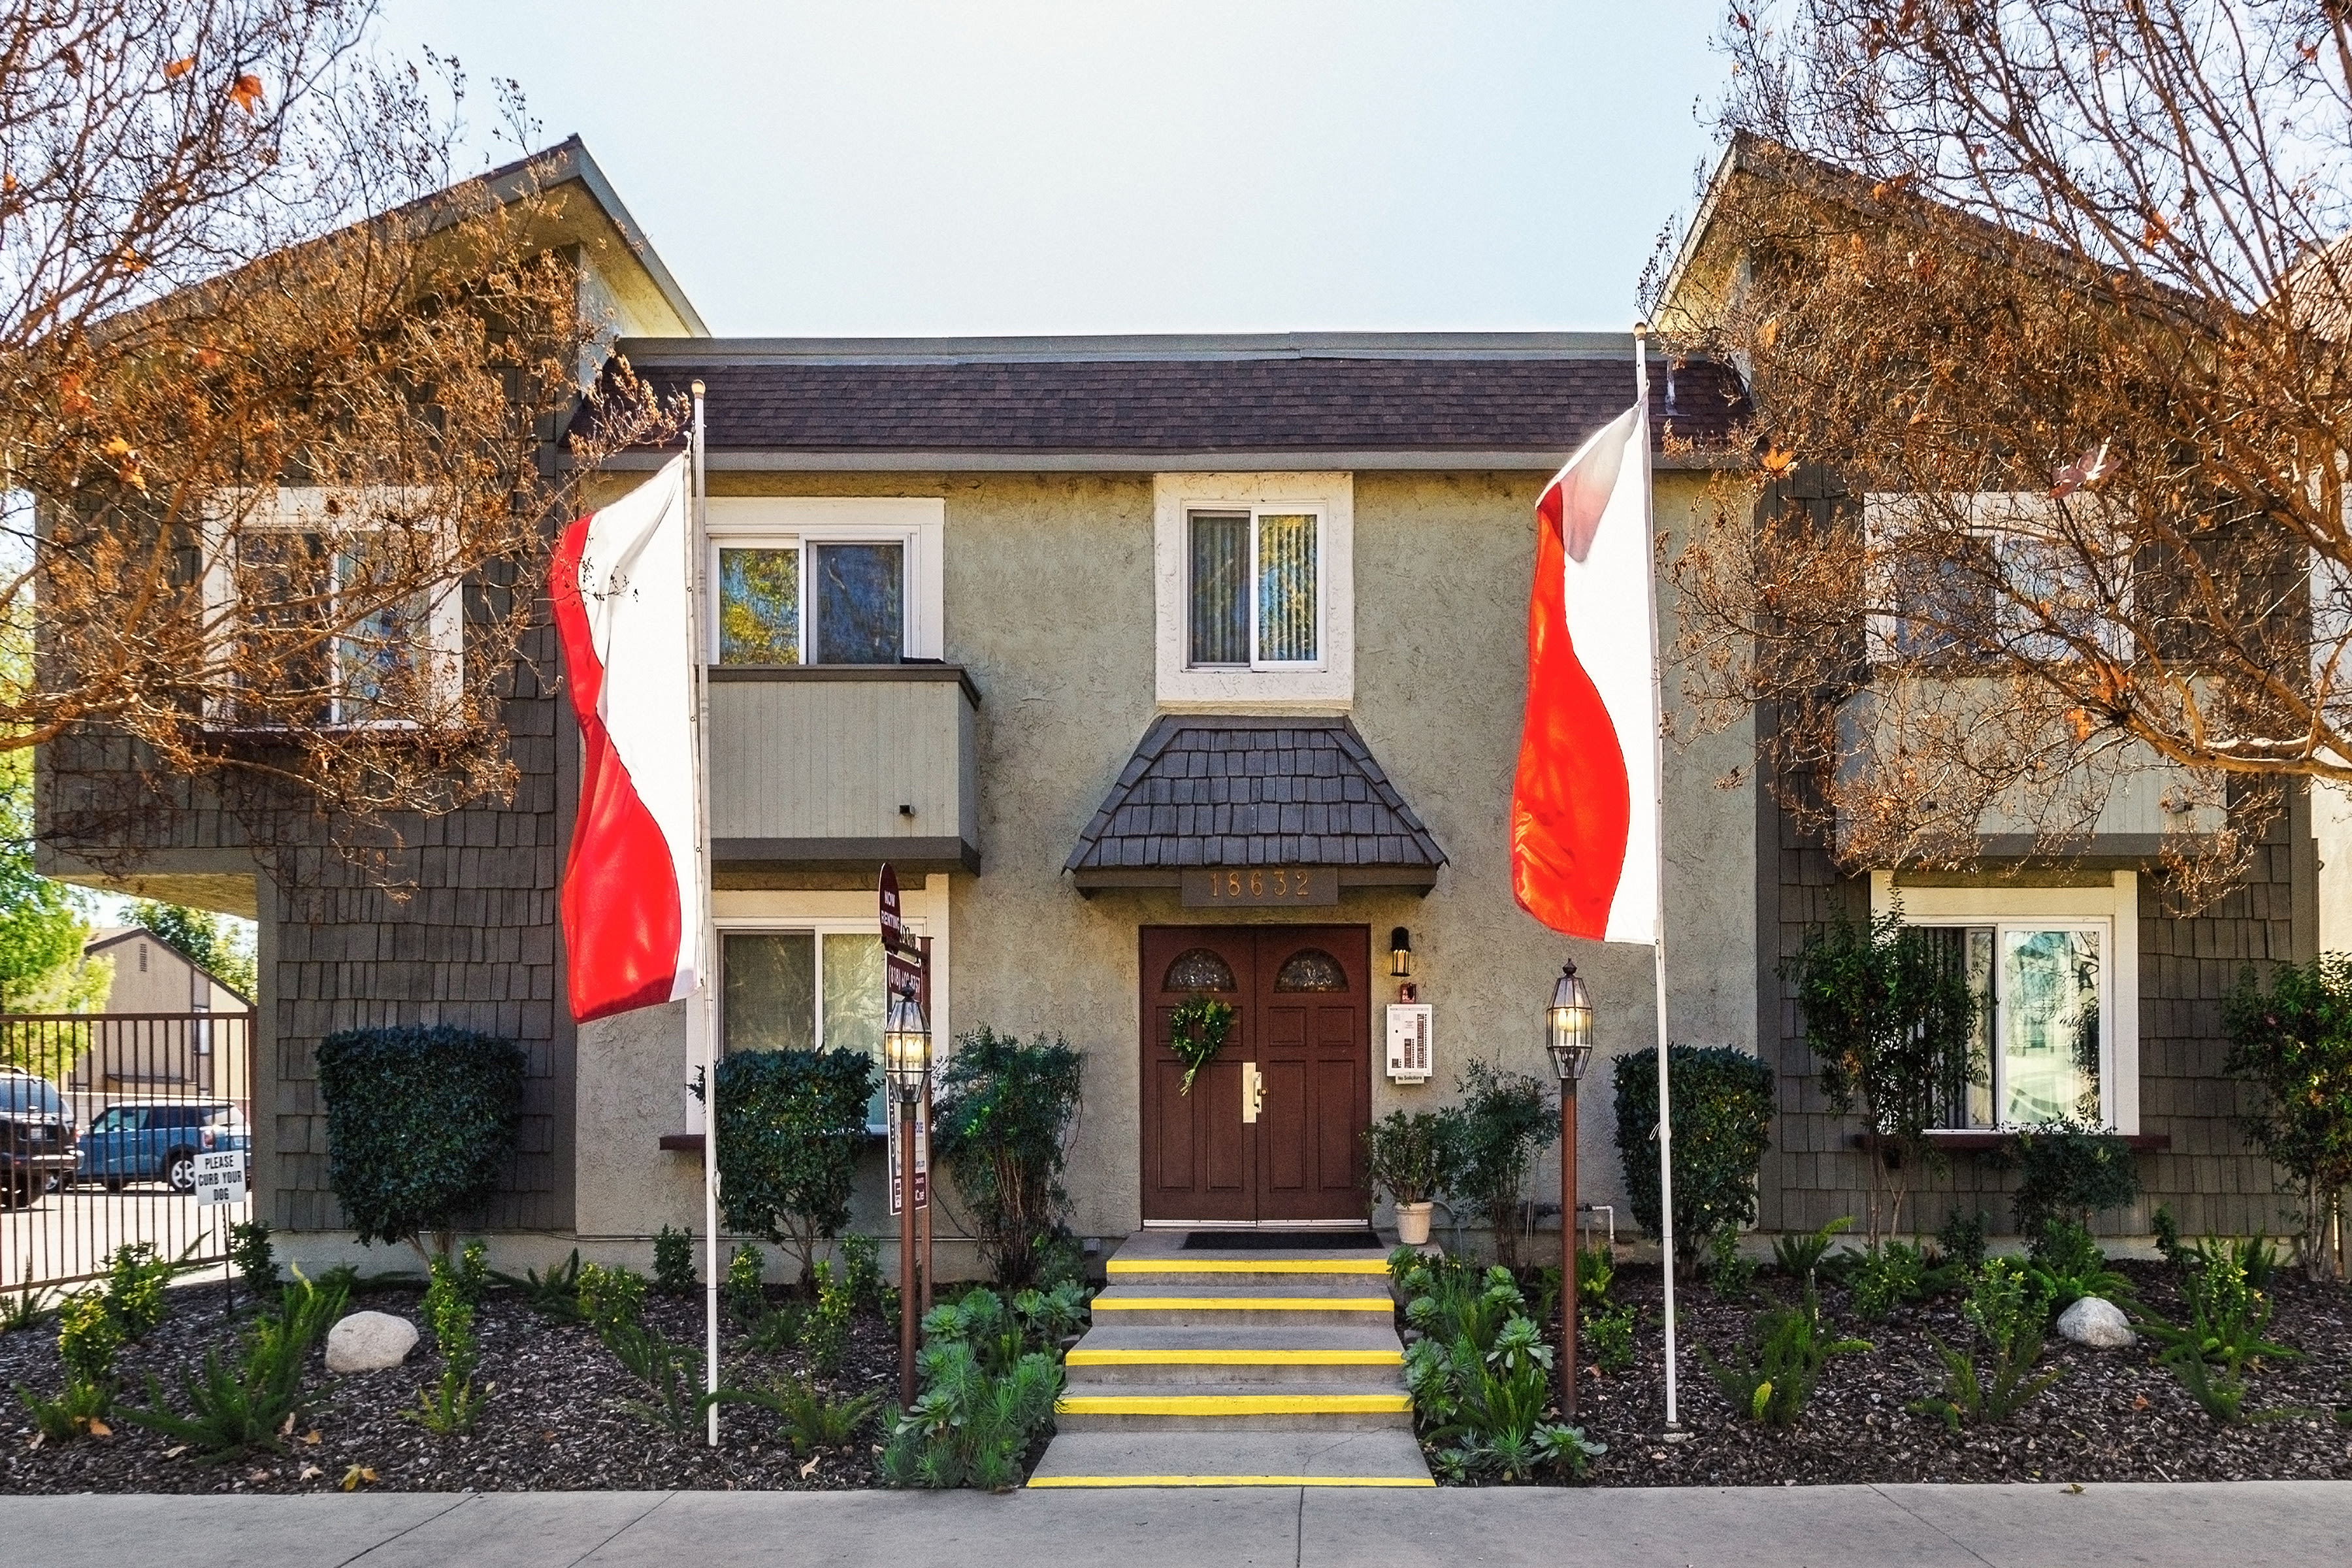 Exterior of building with flags at The Newporter in Tarzana, California